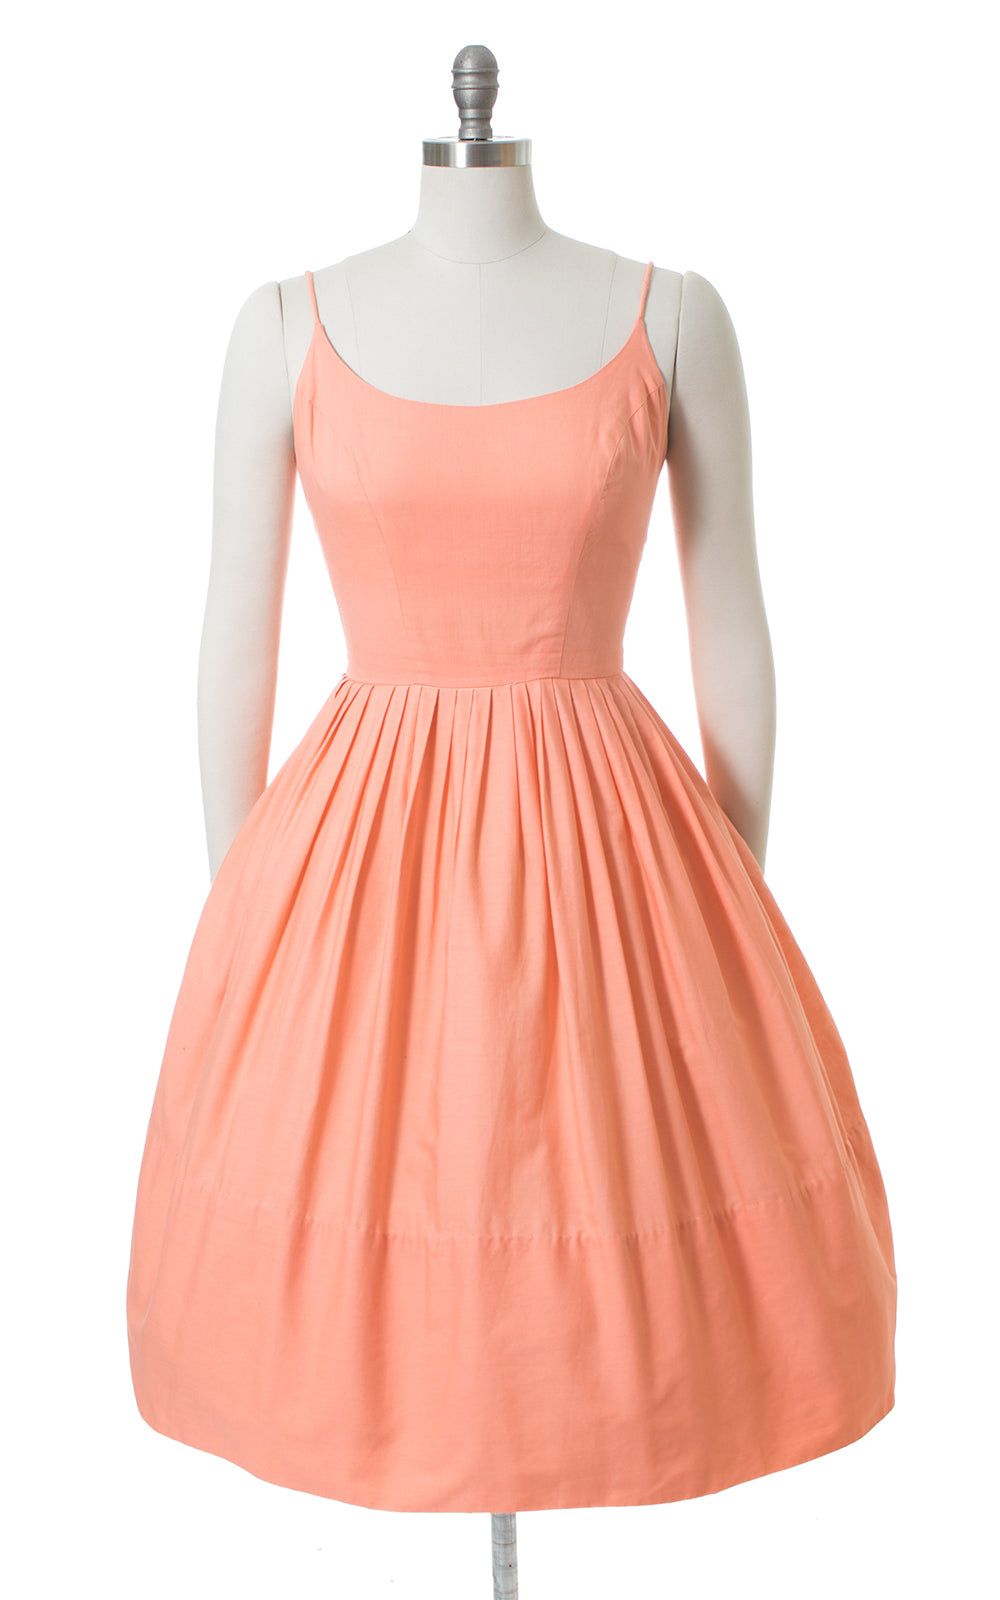 1950s Frederick's of Hollywood Peach Cotton Sundress